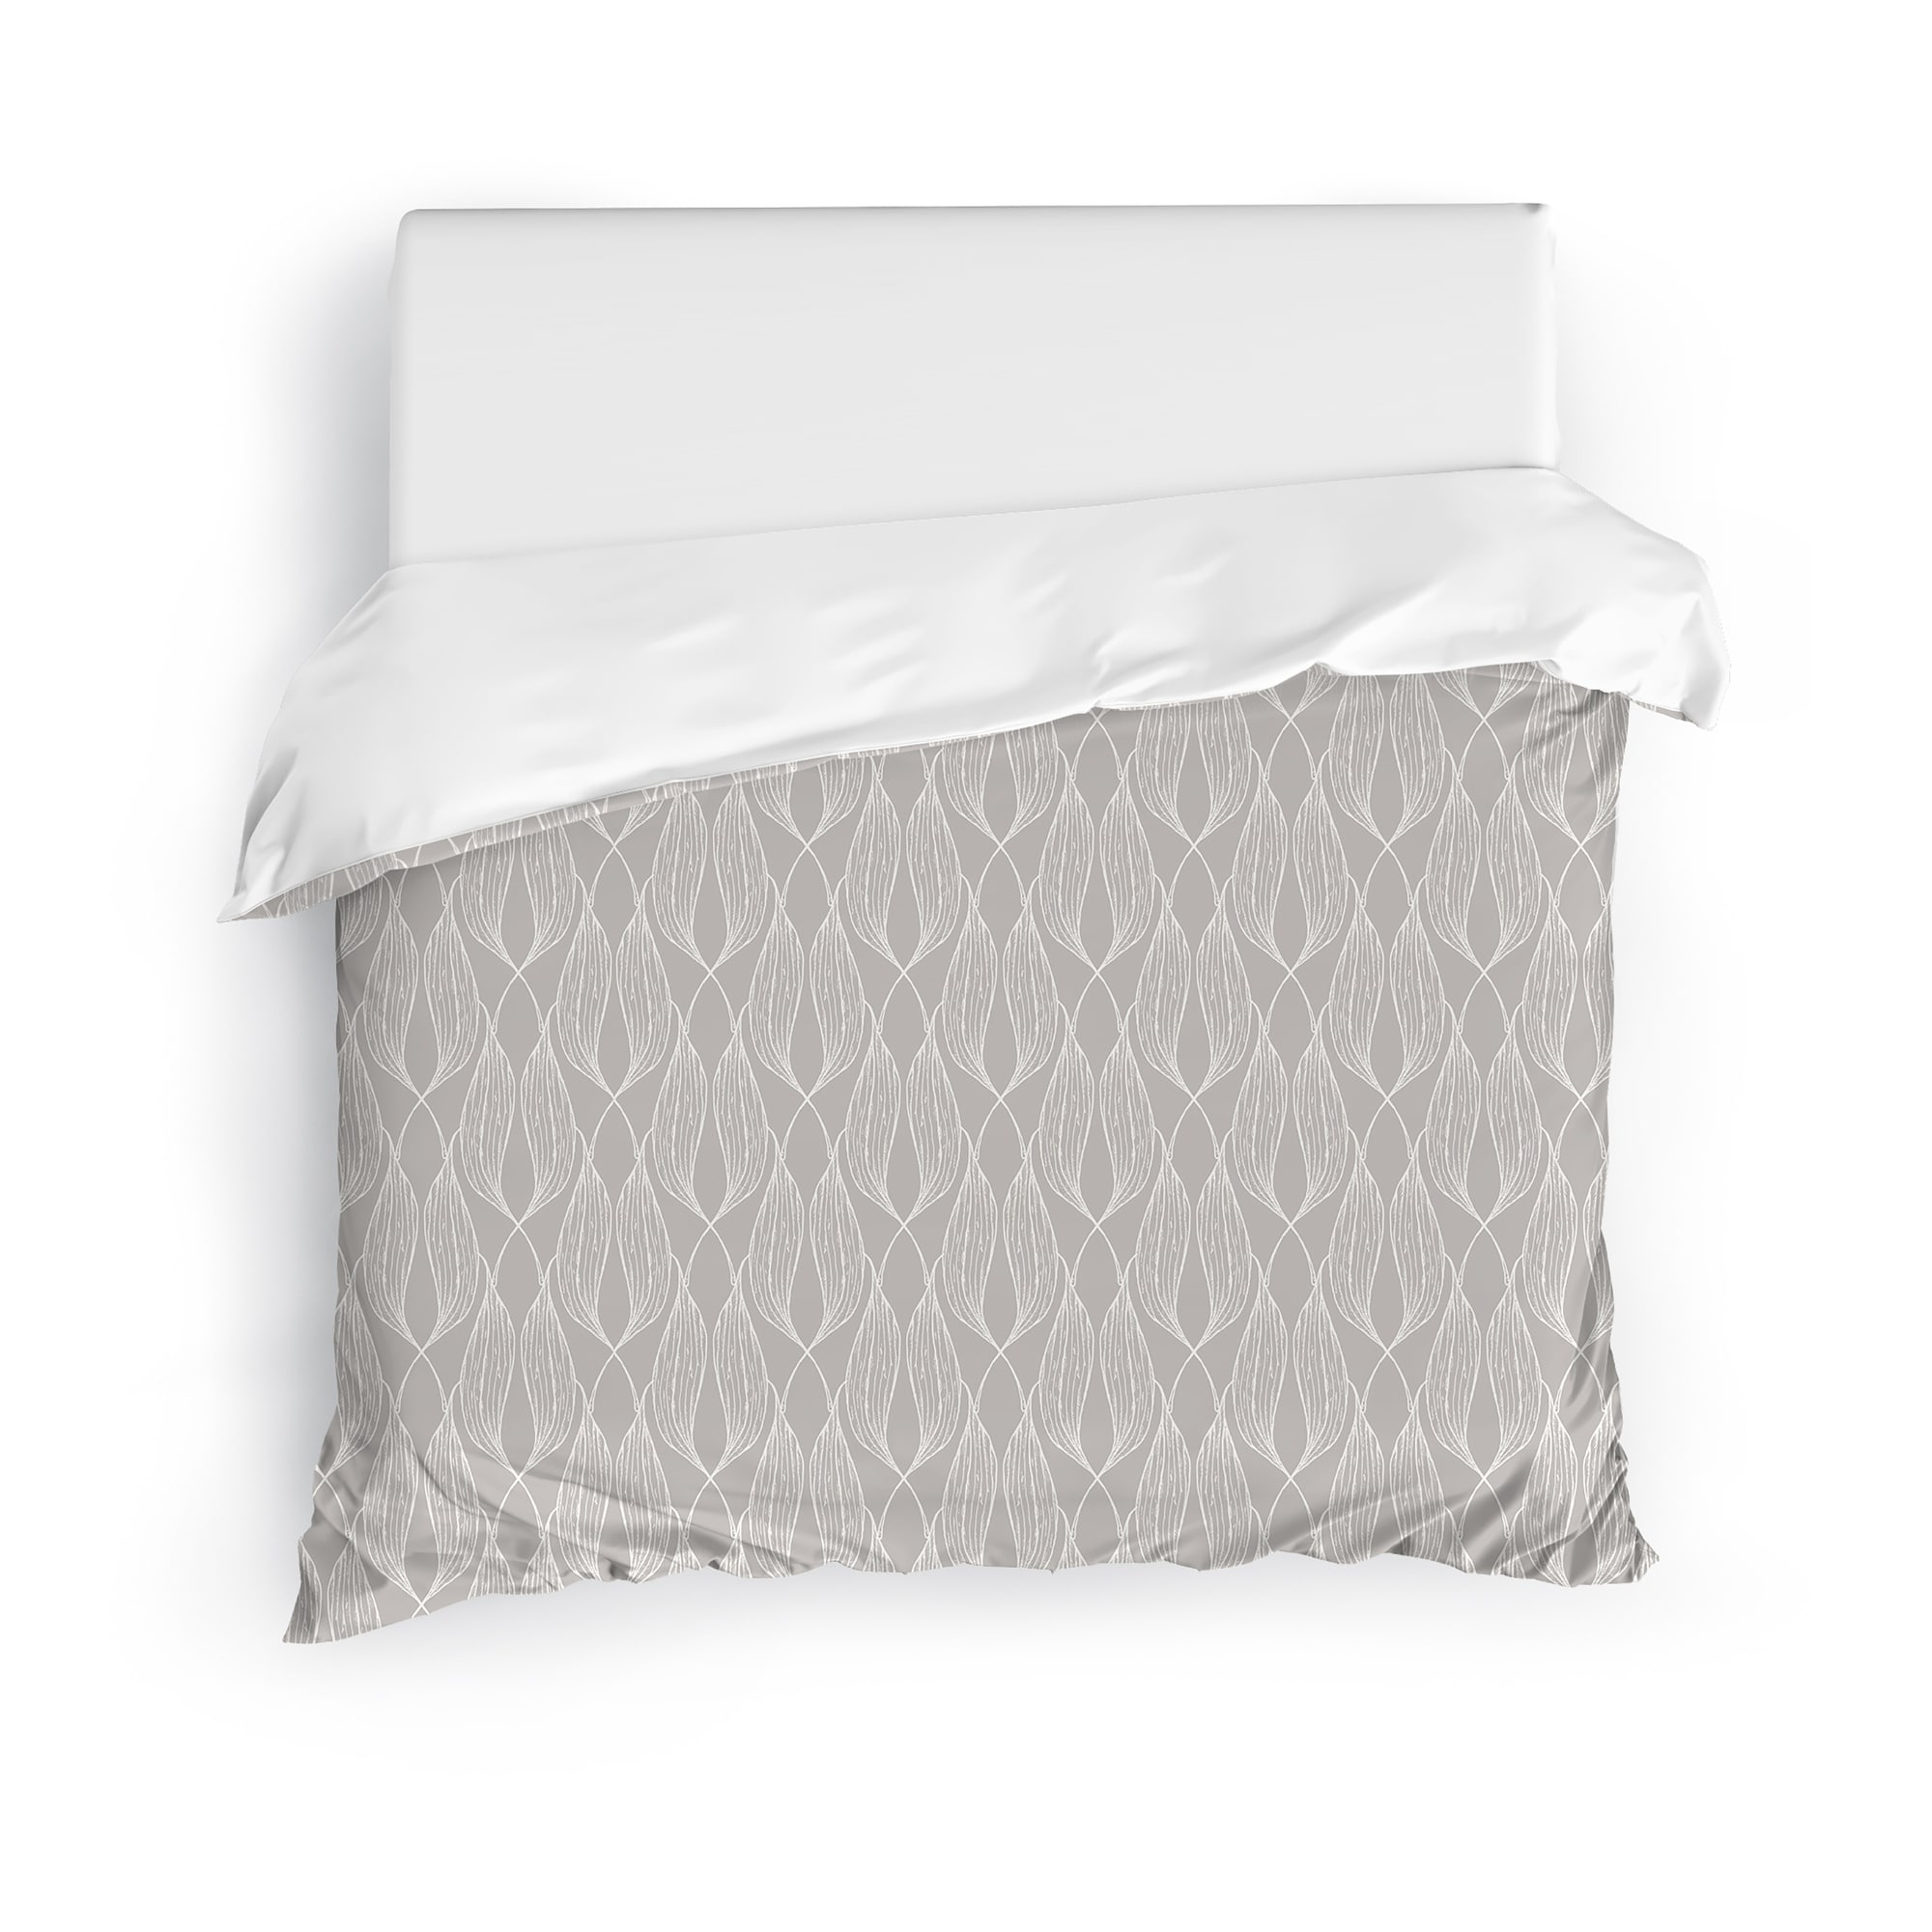 Alaina Light Grey Duvet Cover By Kavka Designs On Sale Overstock 30772791